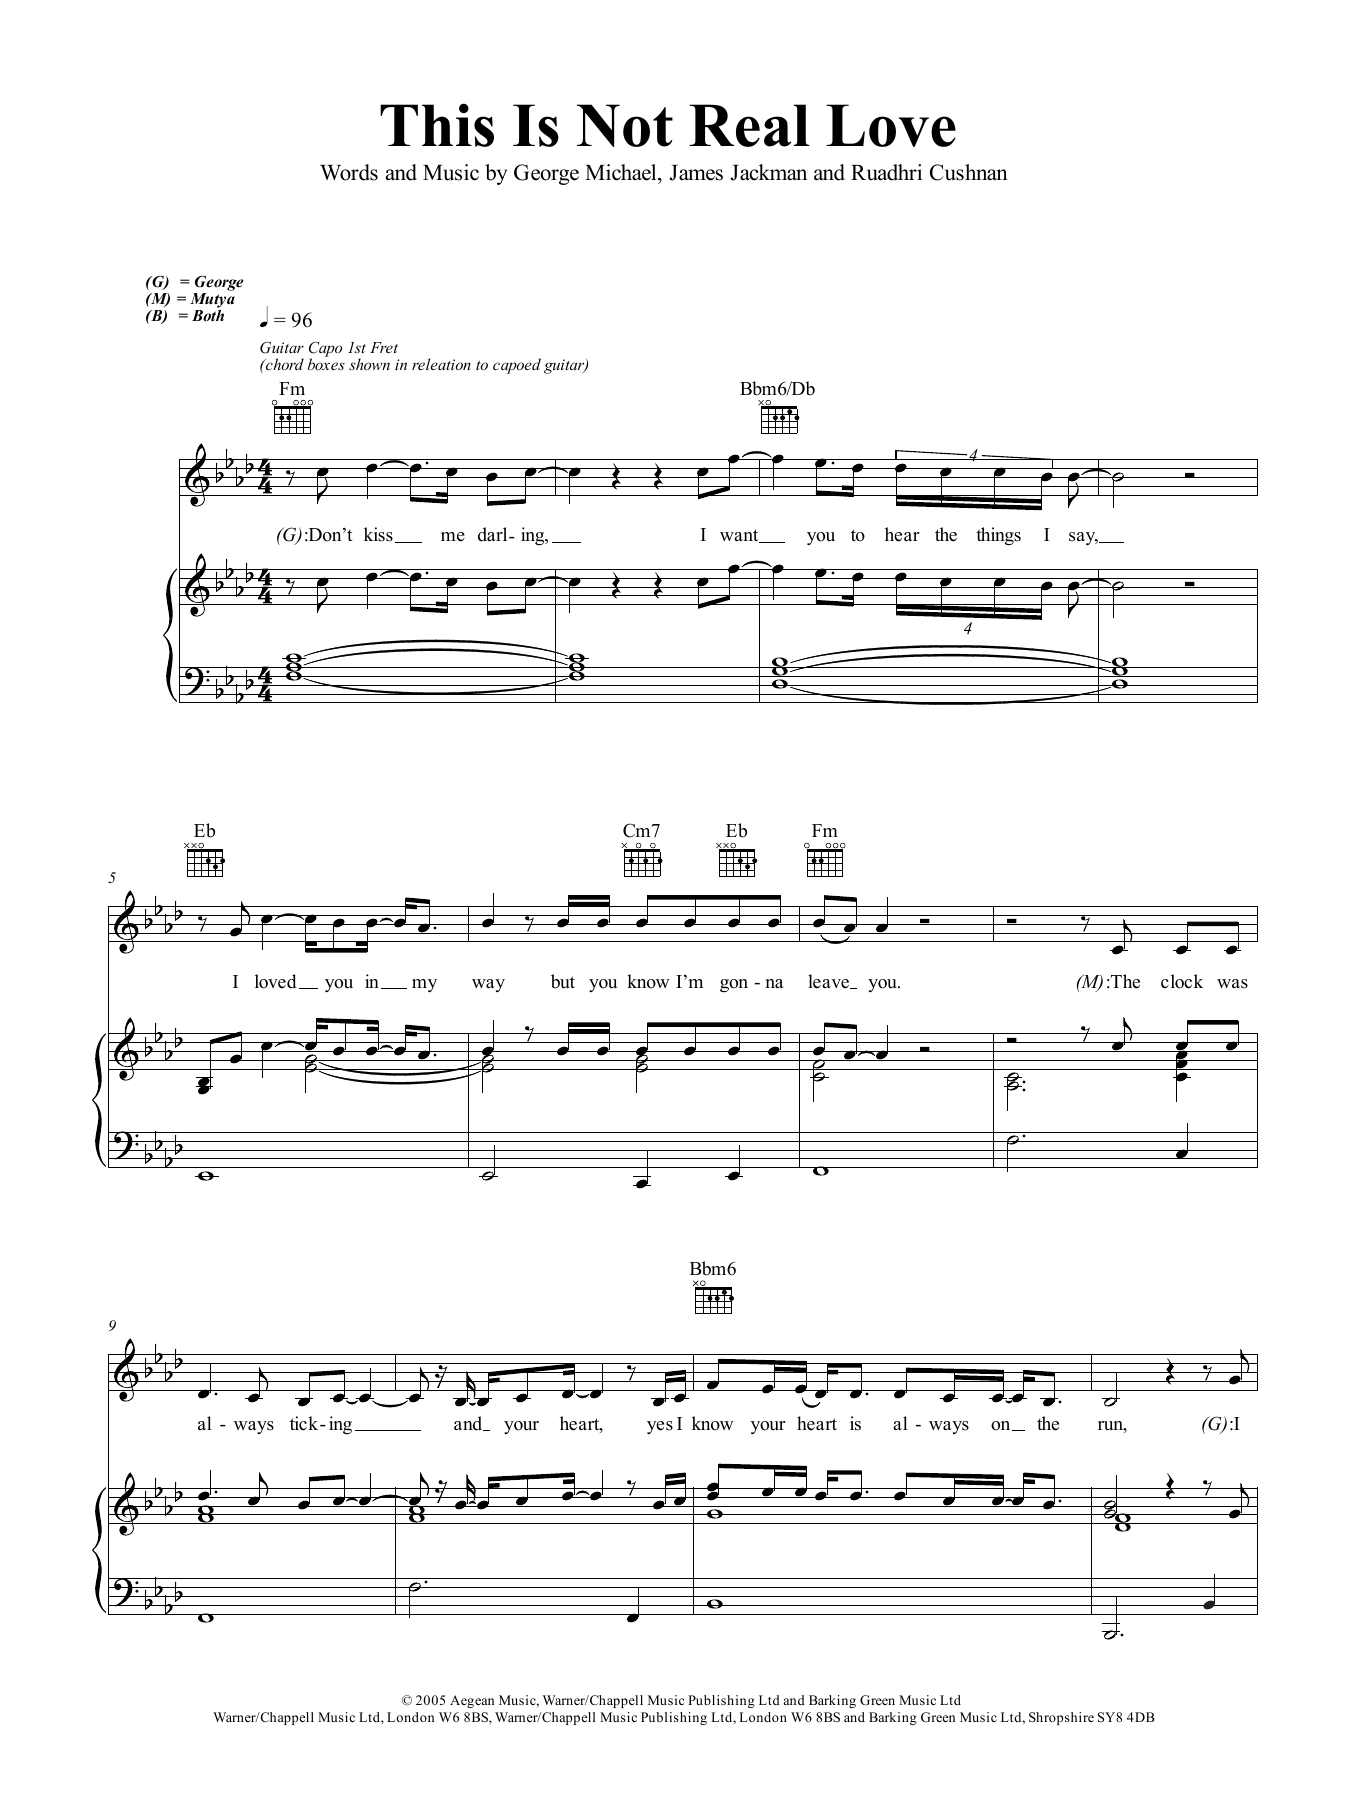 This Is Not Real Love Sheet Music